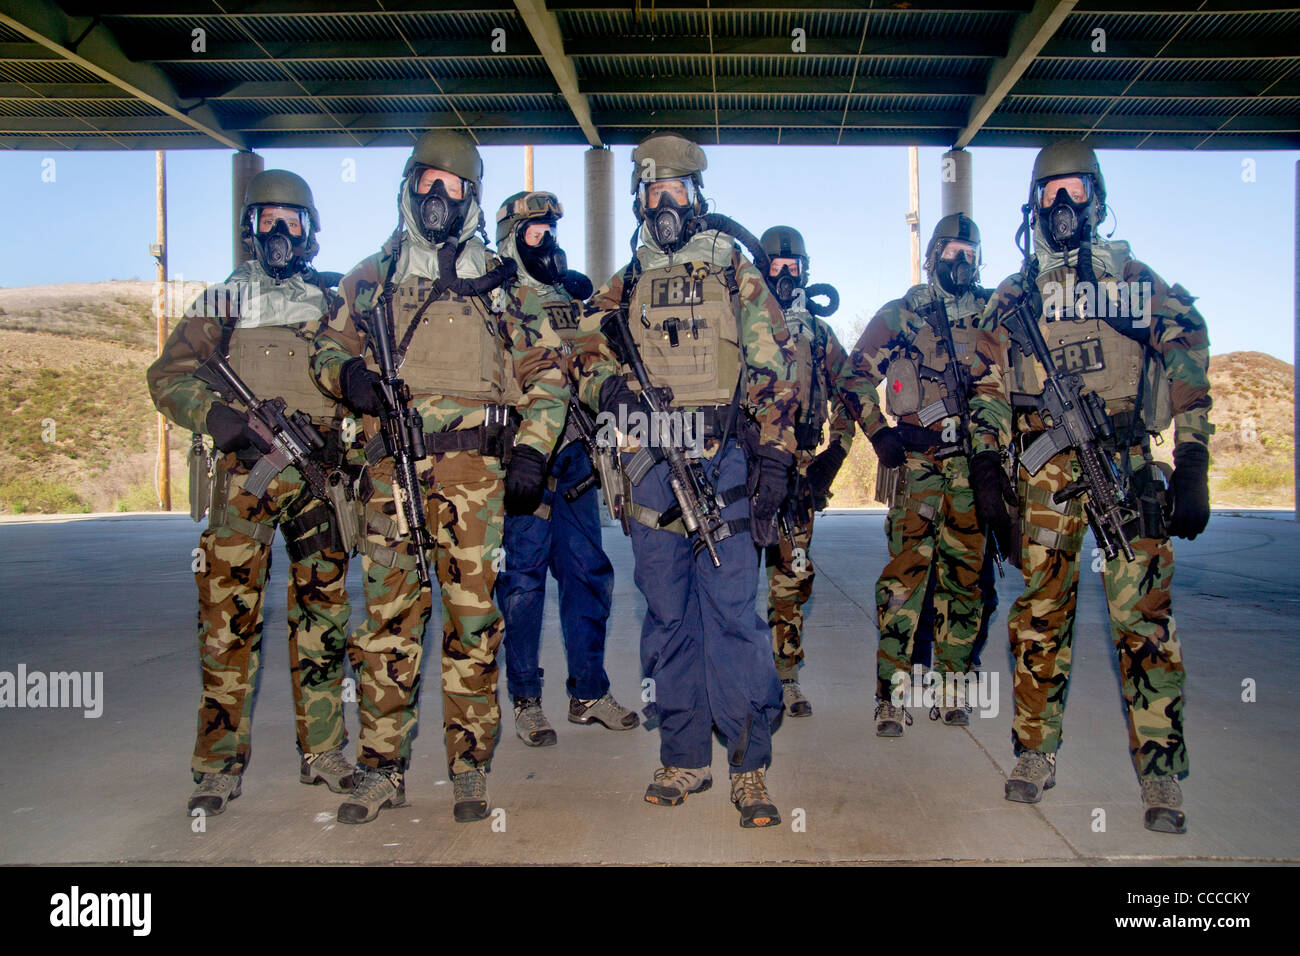 Fbi Swat Special Weapons And Tactics Team Members Wear Specialized